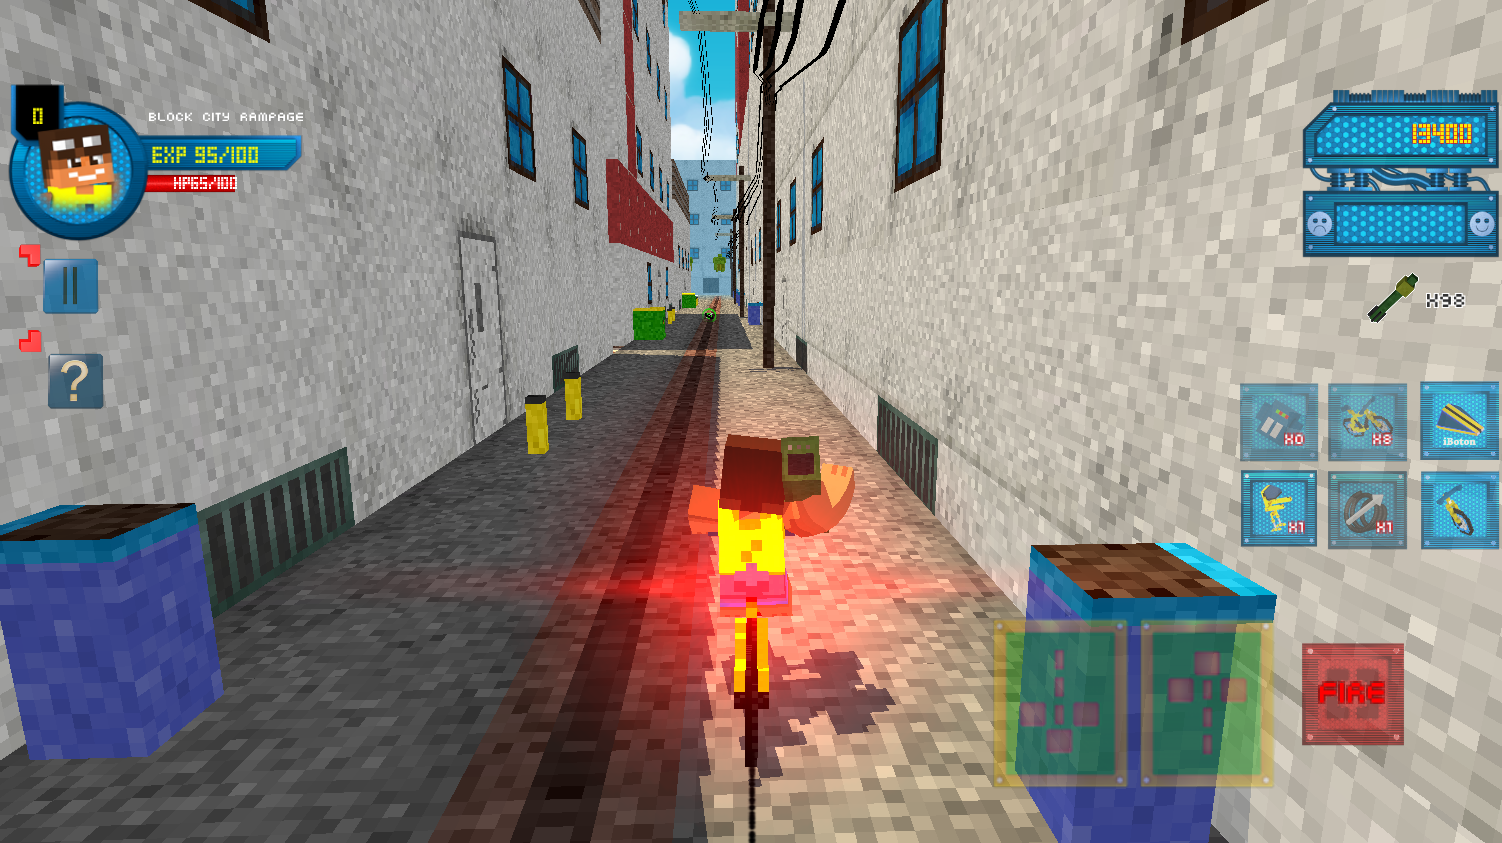 Block City Rampage Screenshot 8